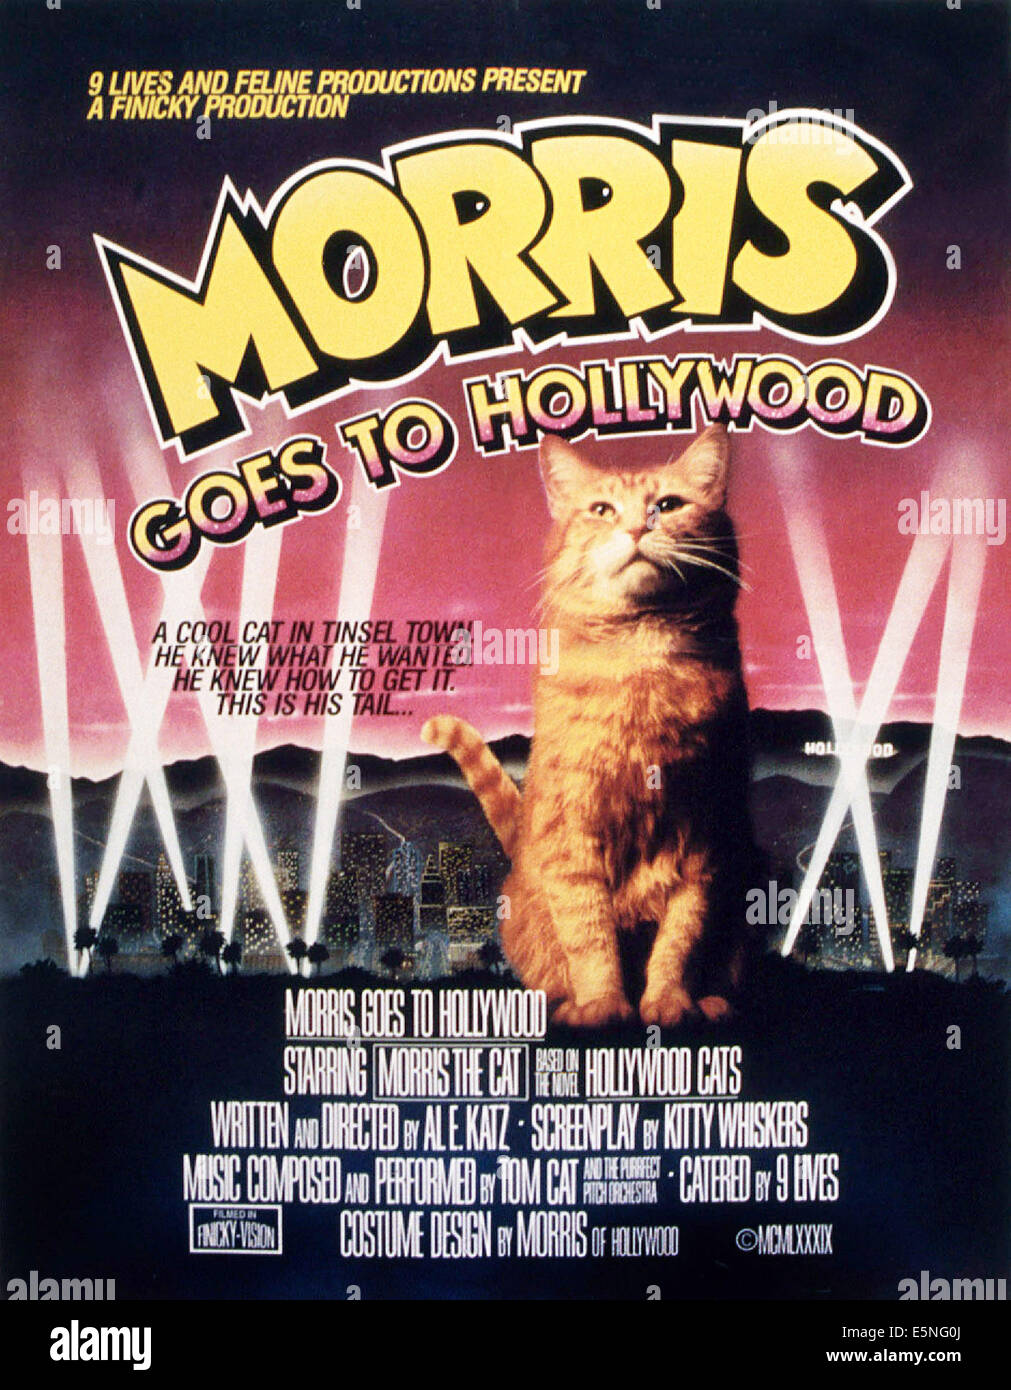 MORRIS GOES TO HOLLYWOOD, Morris the Cat, 1989 - Stock Image